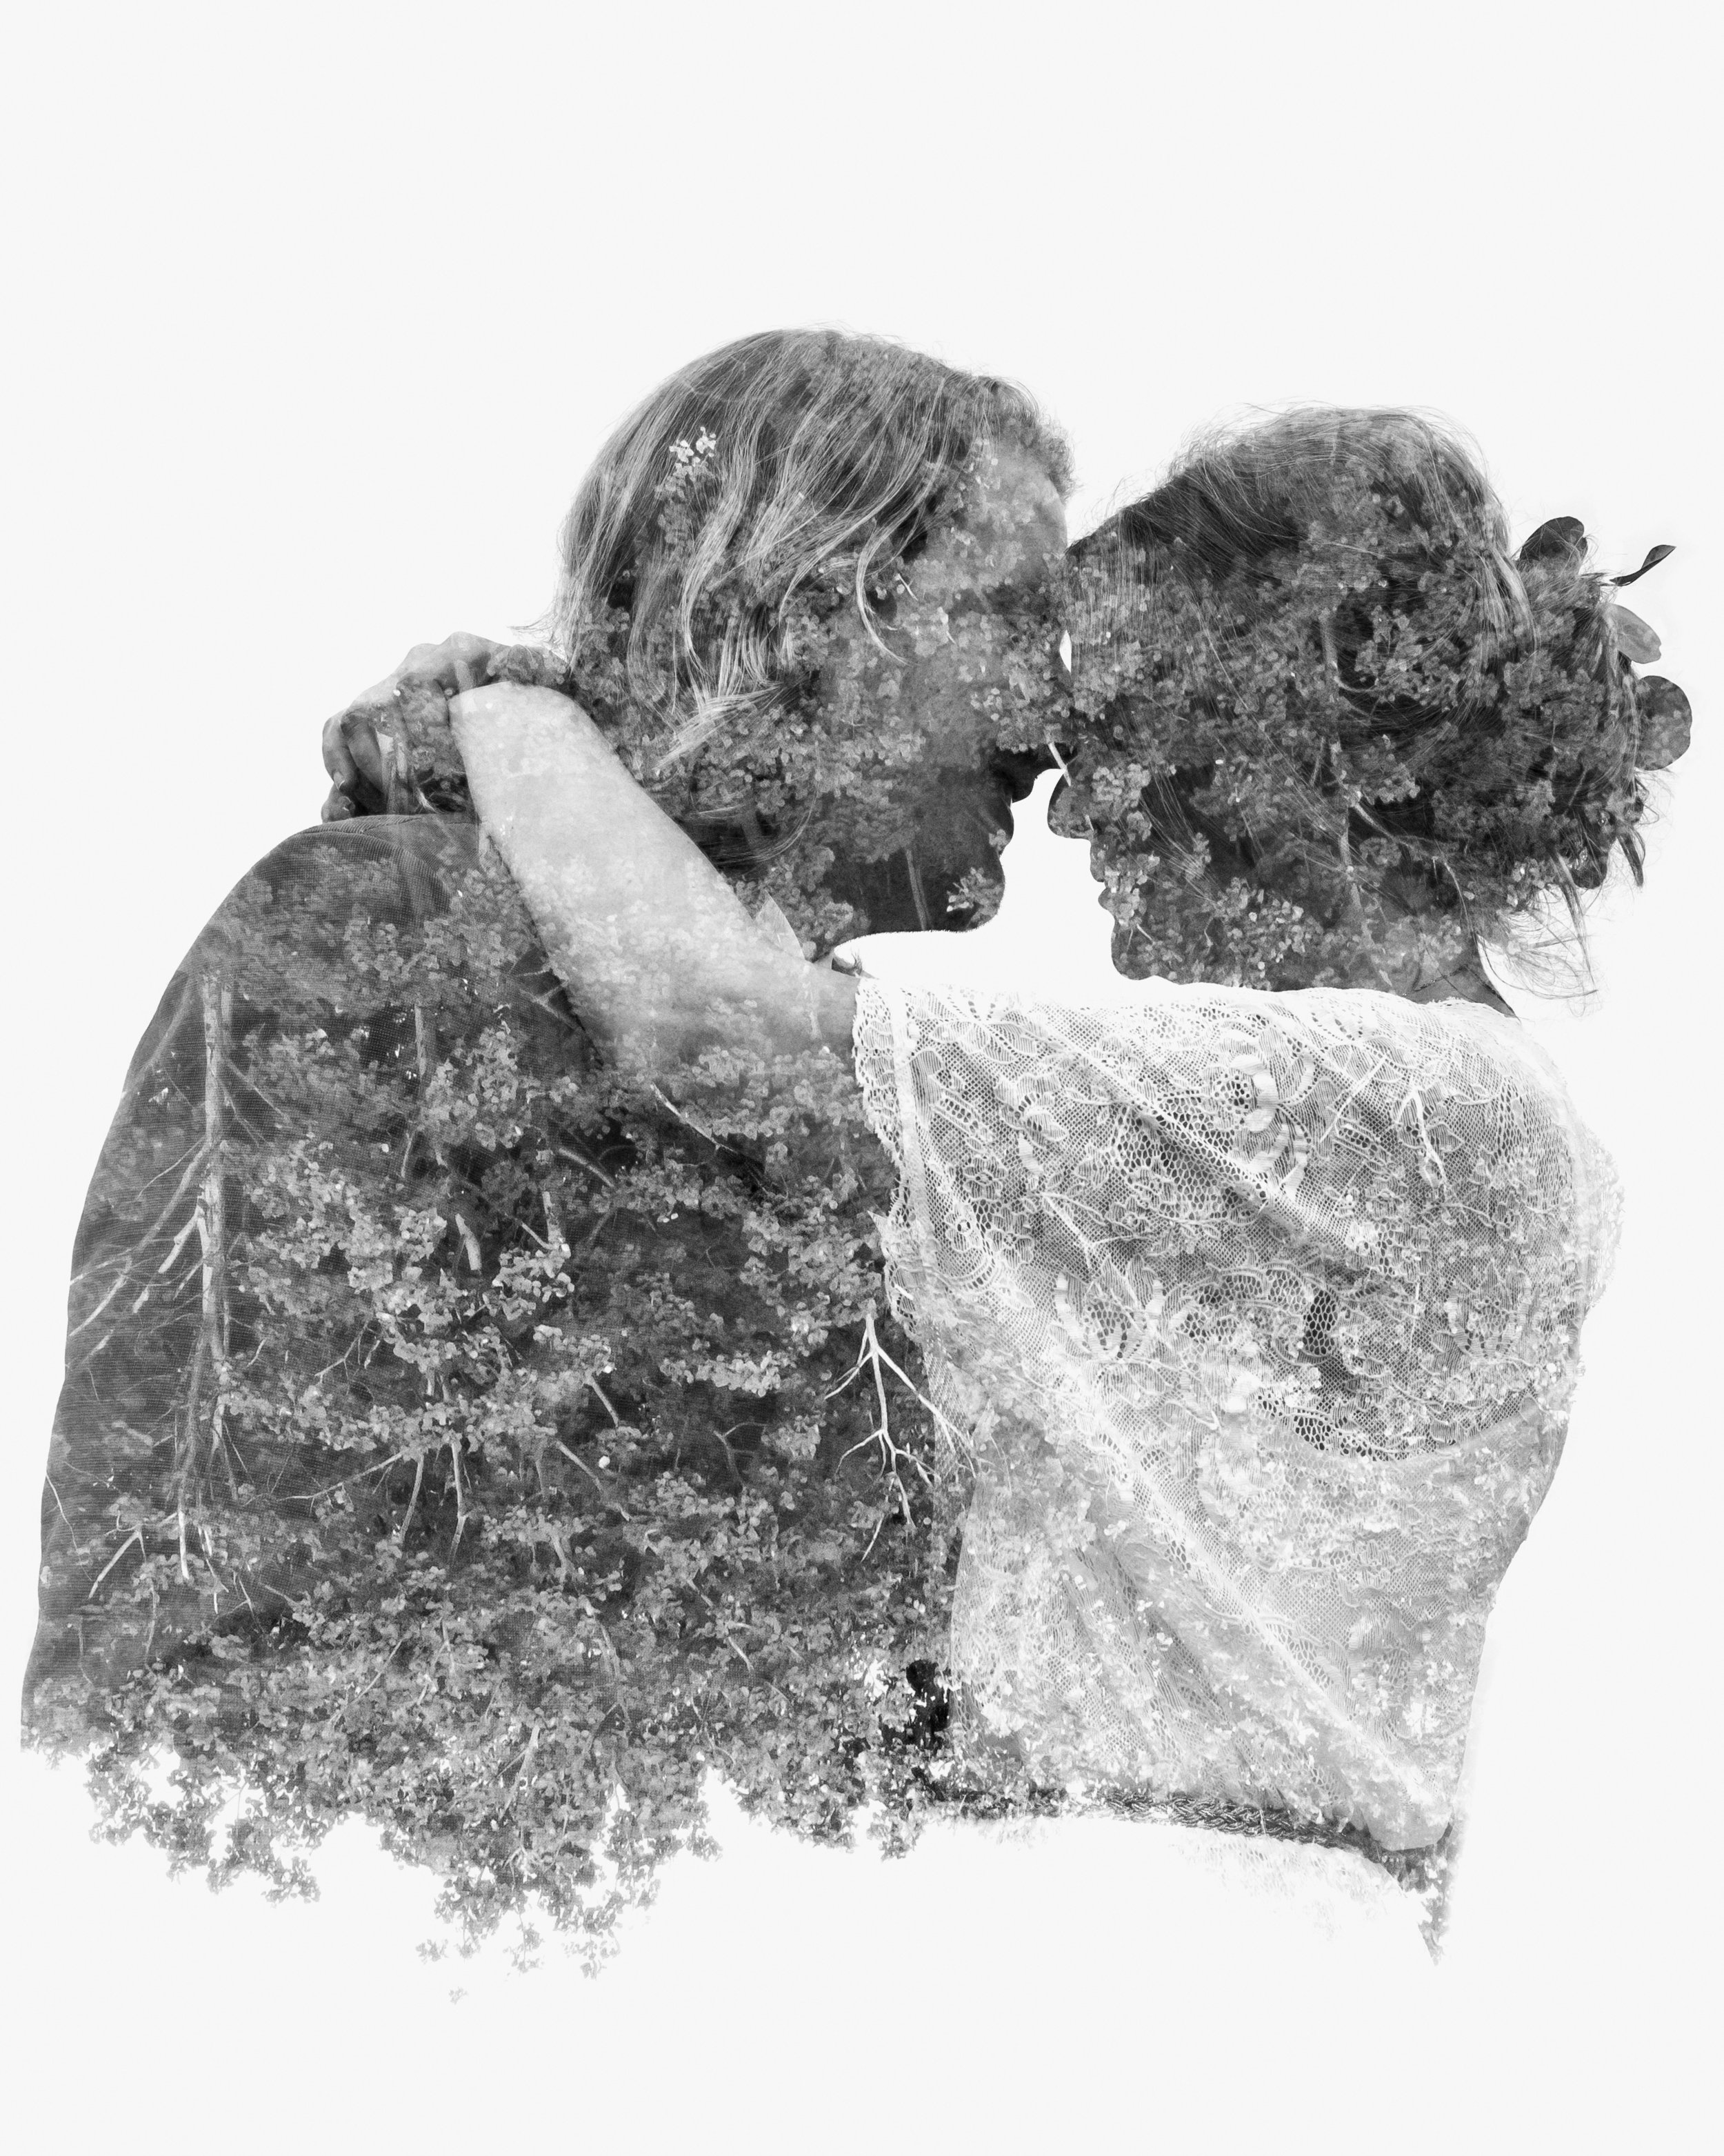 Faux Double Exposure of the Bride and Groom.